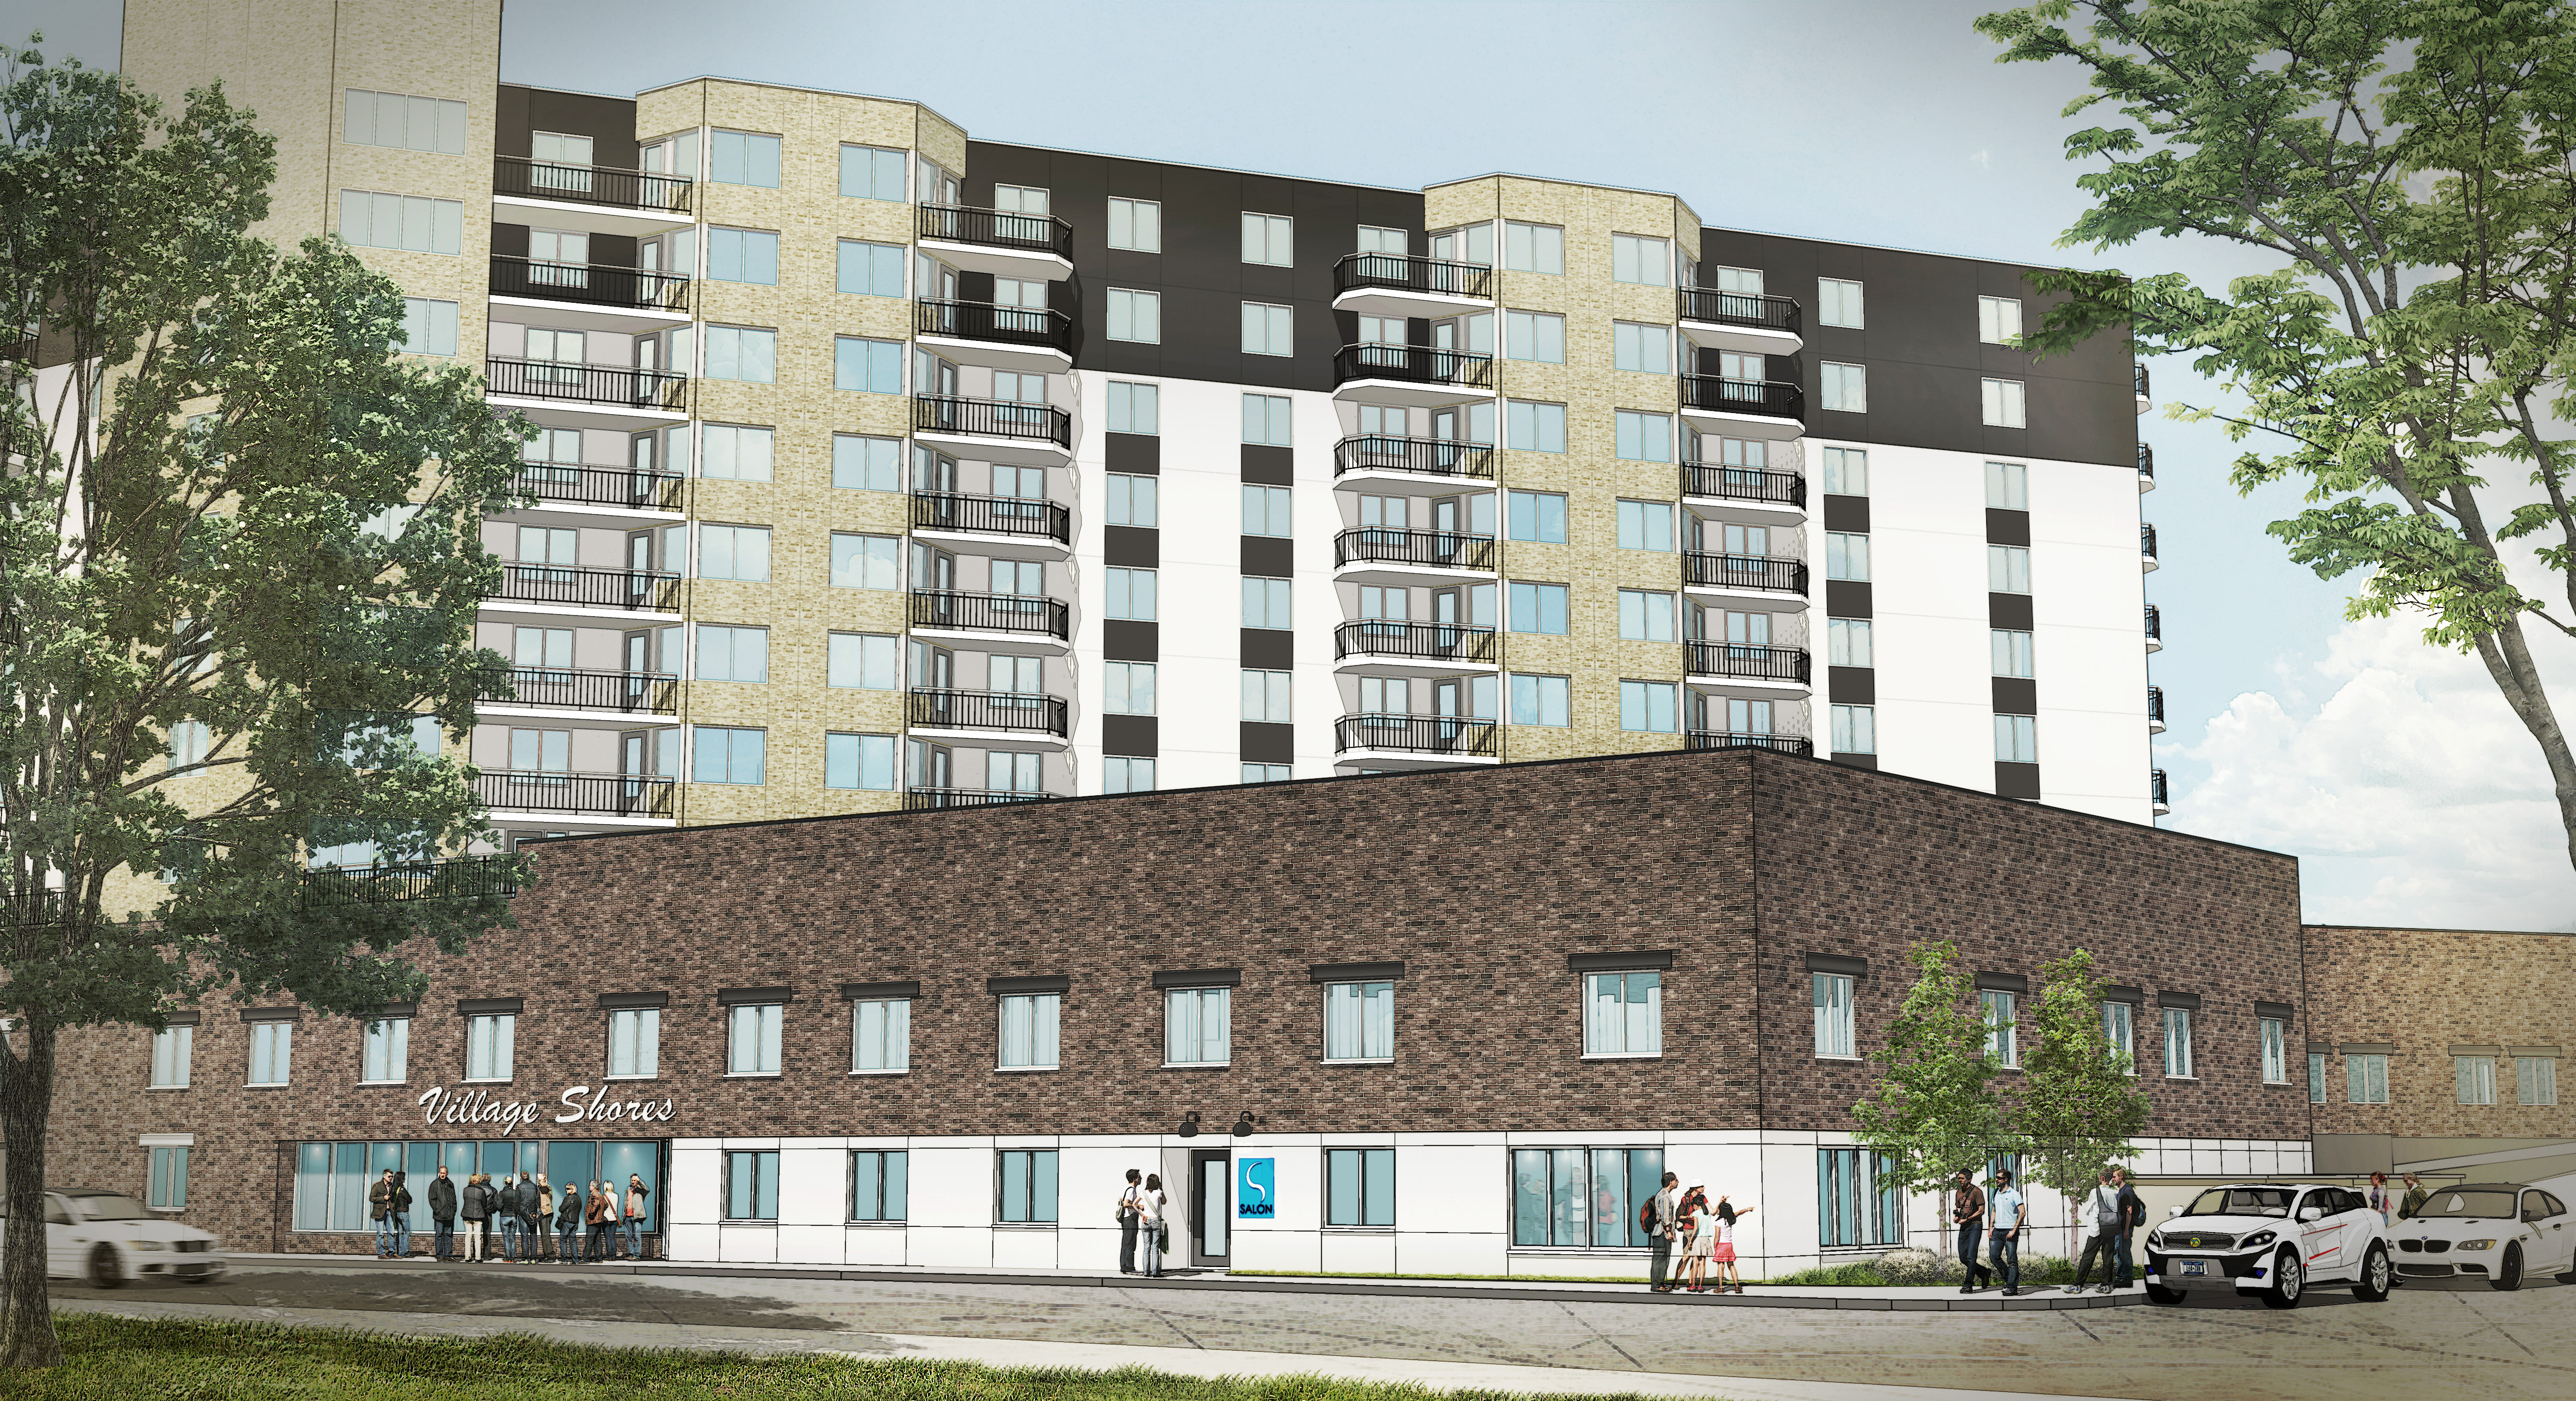 VILLAGE SHORES RENDERING